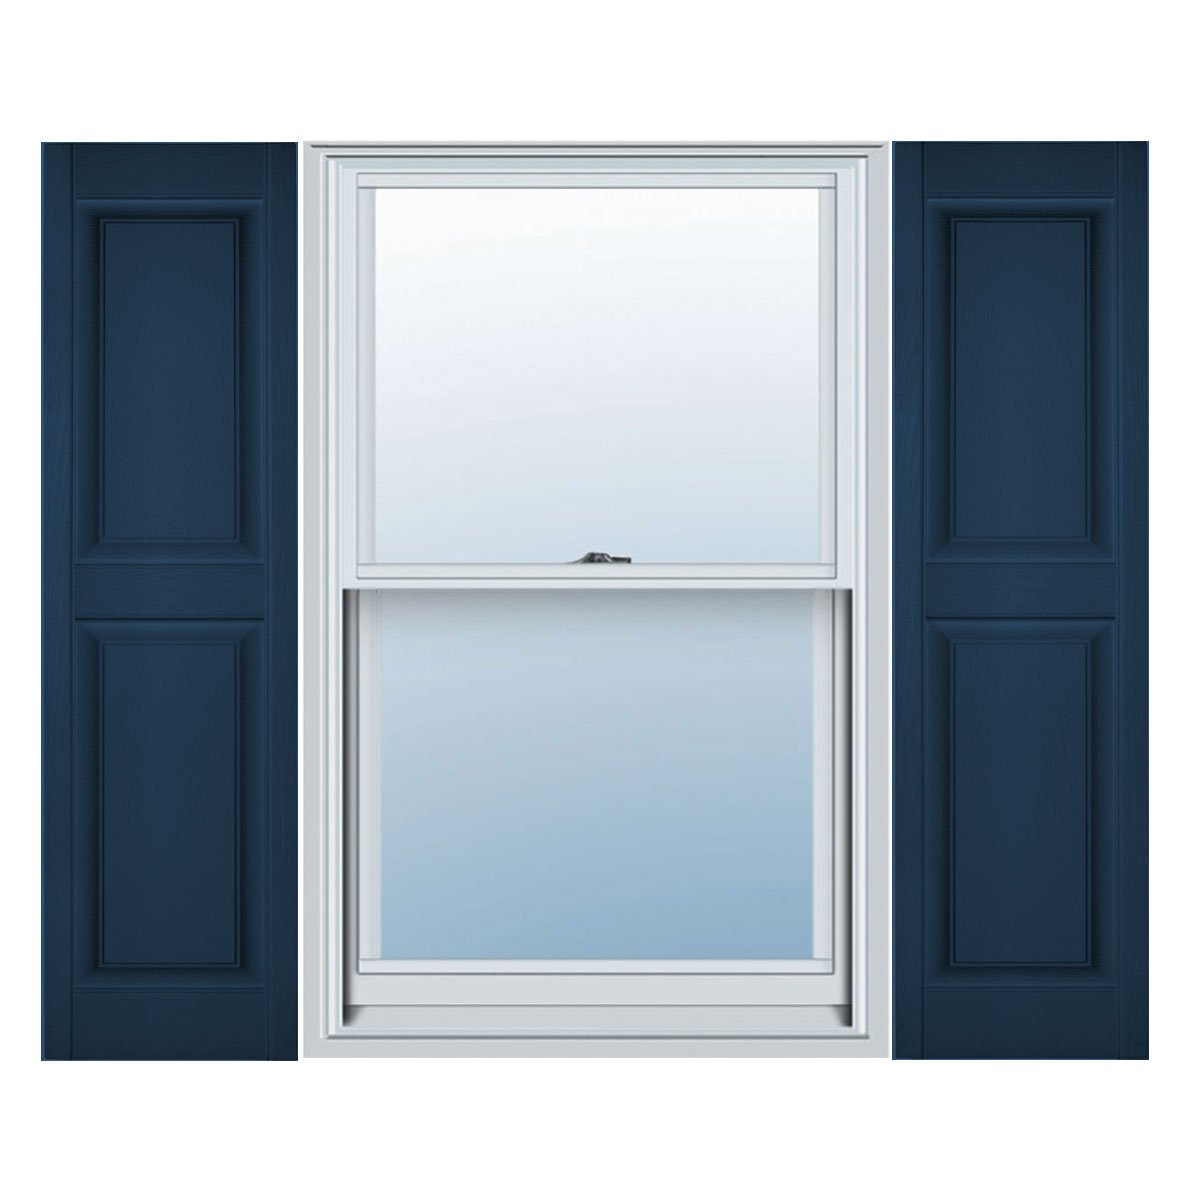 14 3/4''W x 71''H Standard Size Williamsburg Double Panel Shutters, w/Installation Shutter-Lok's, 036 - Classic Blue by Mid America (Image #1)